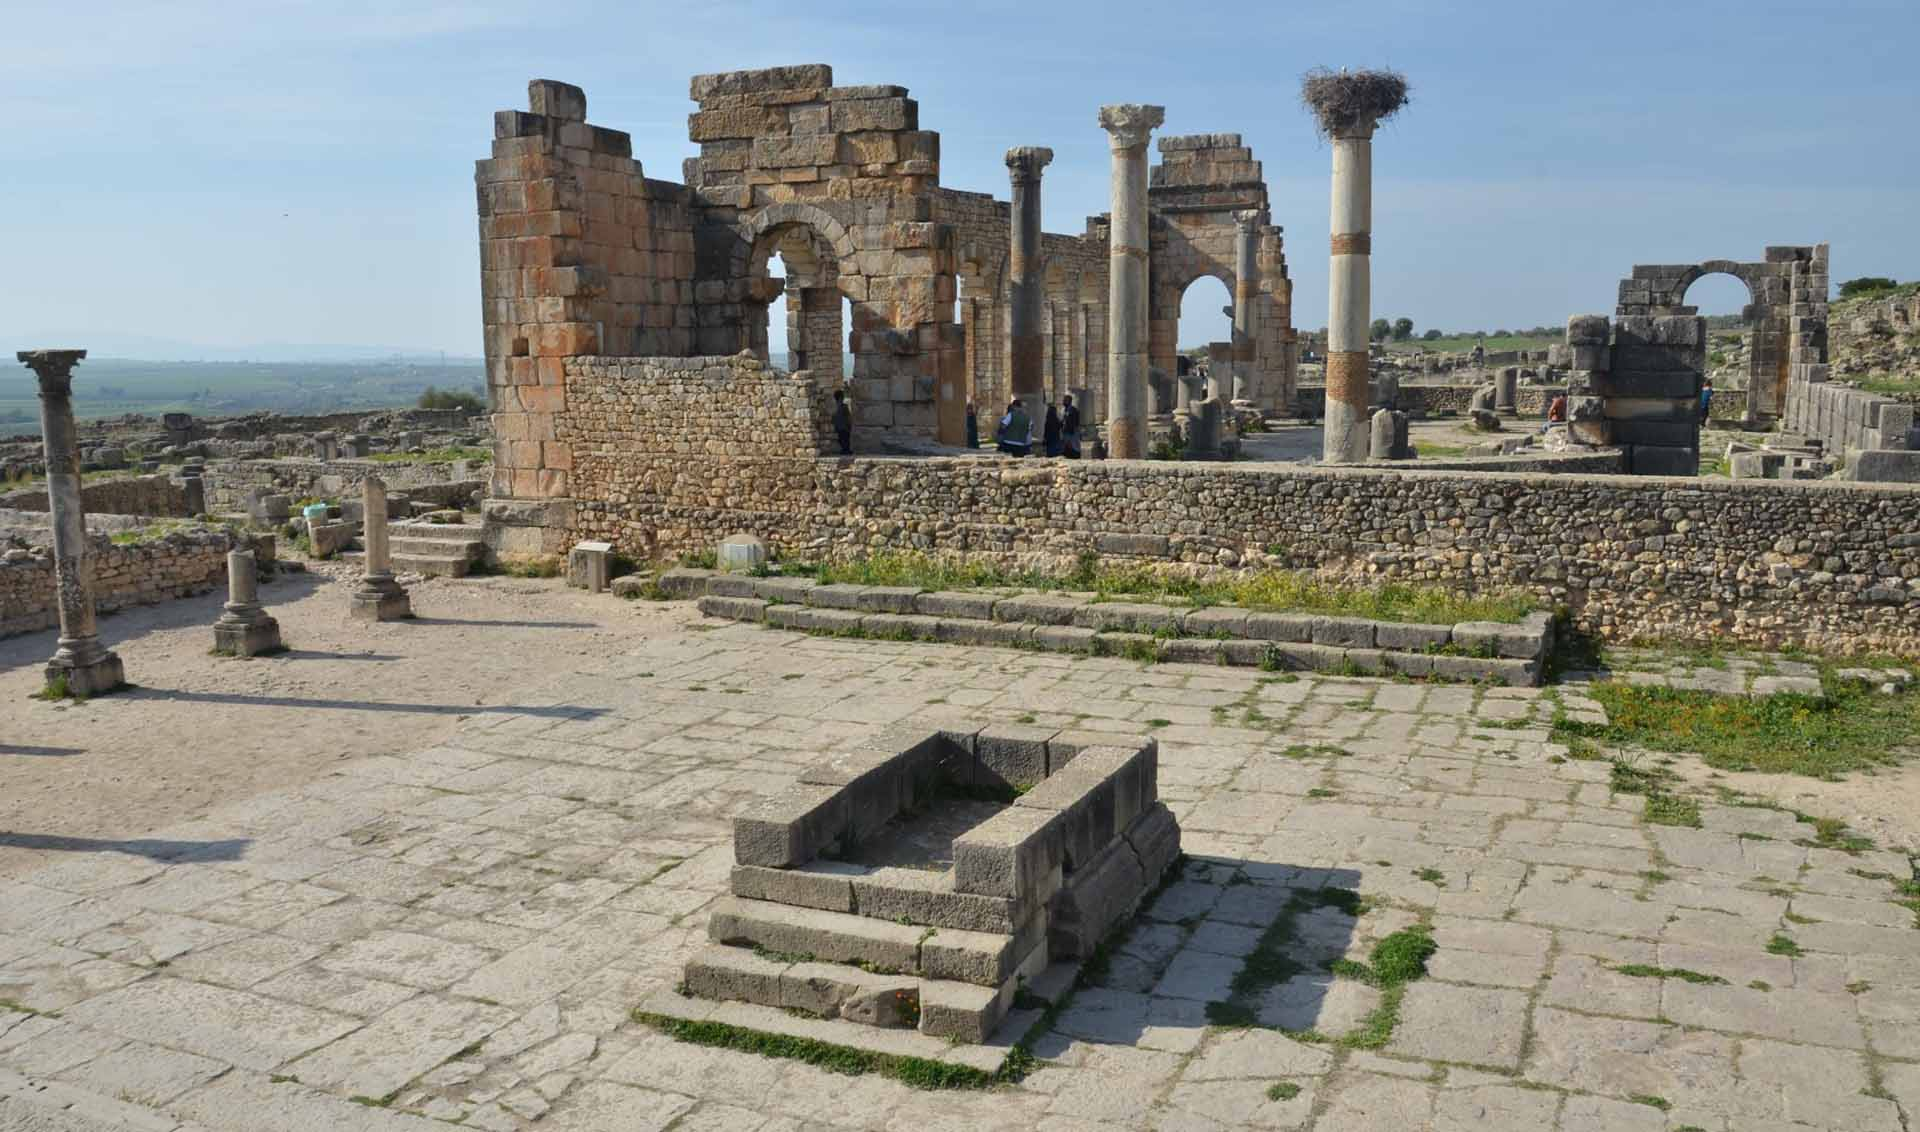 The ruins at Volubilis